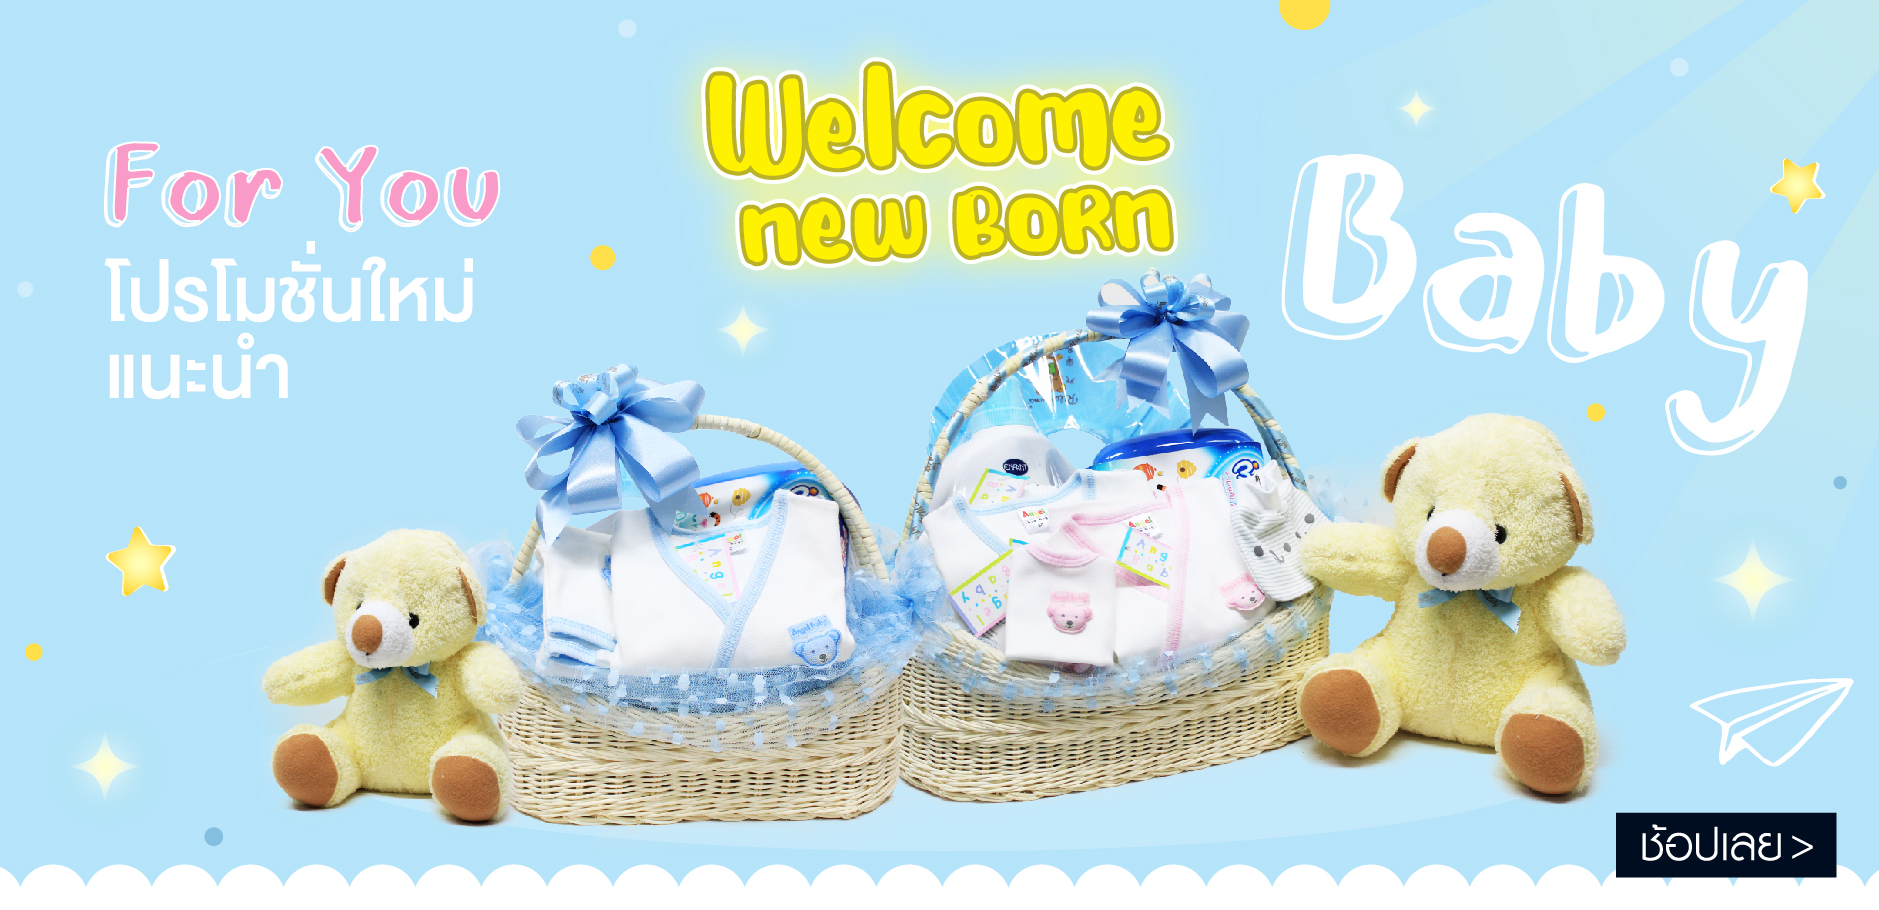 Welcome New Born